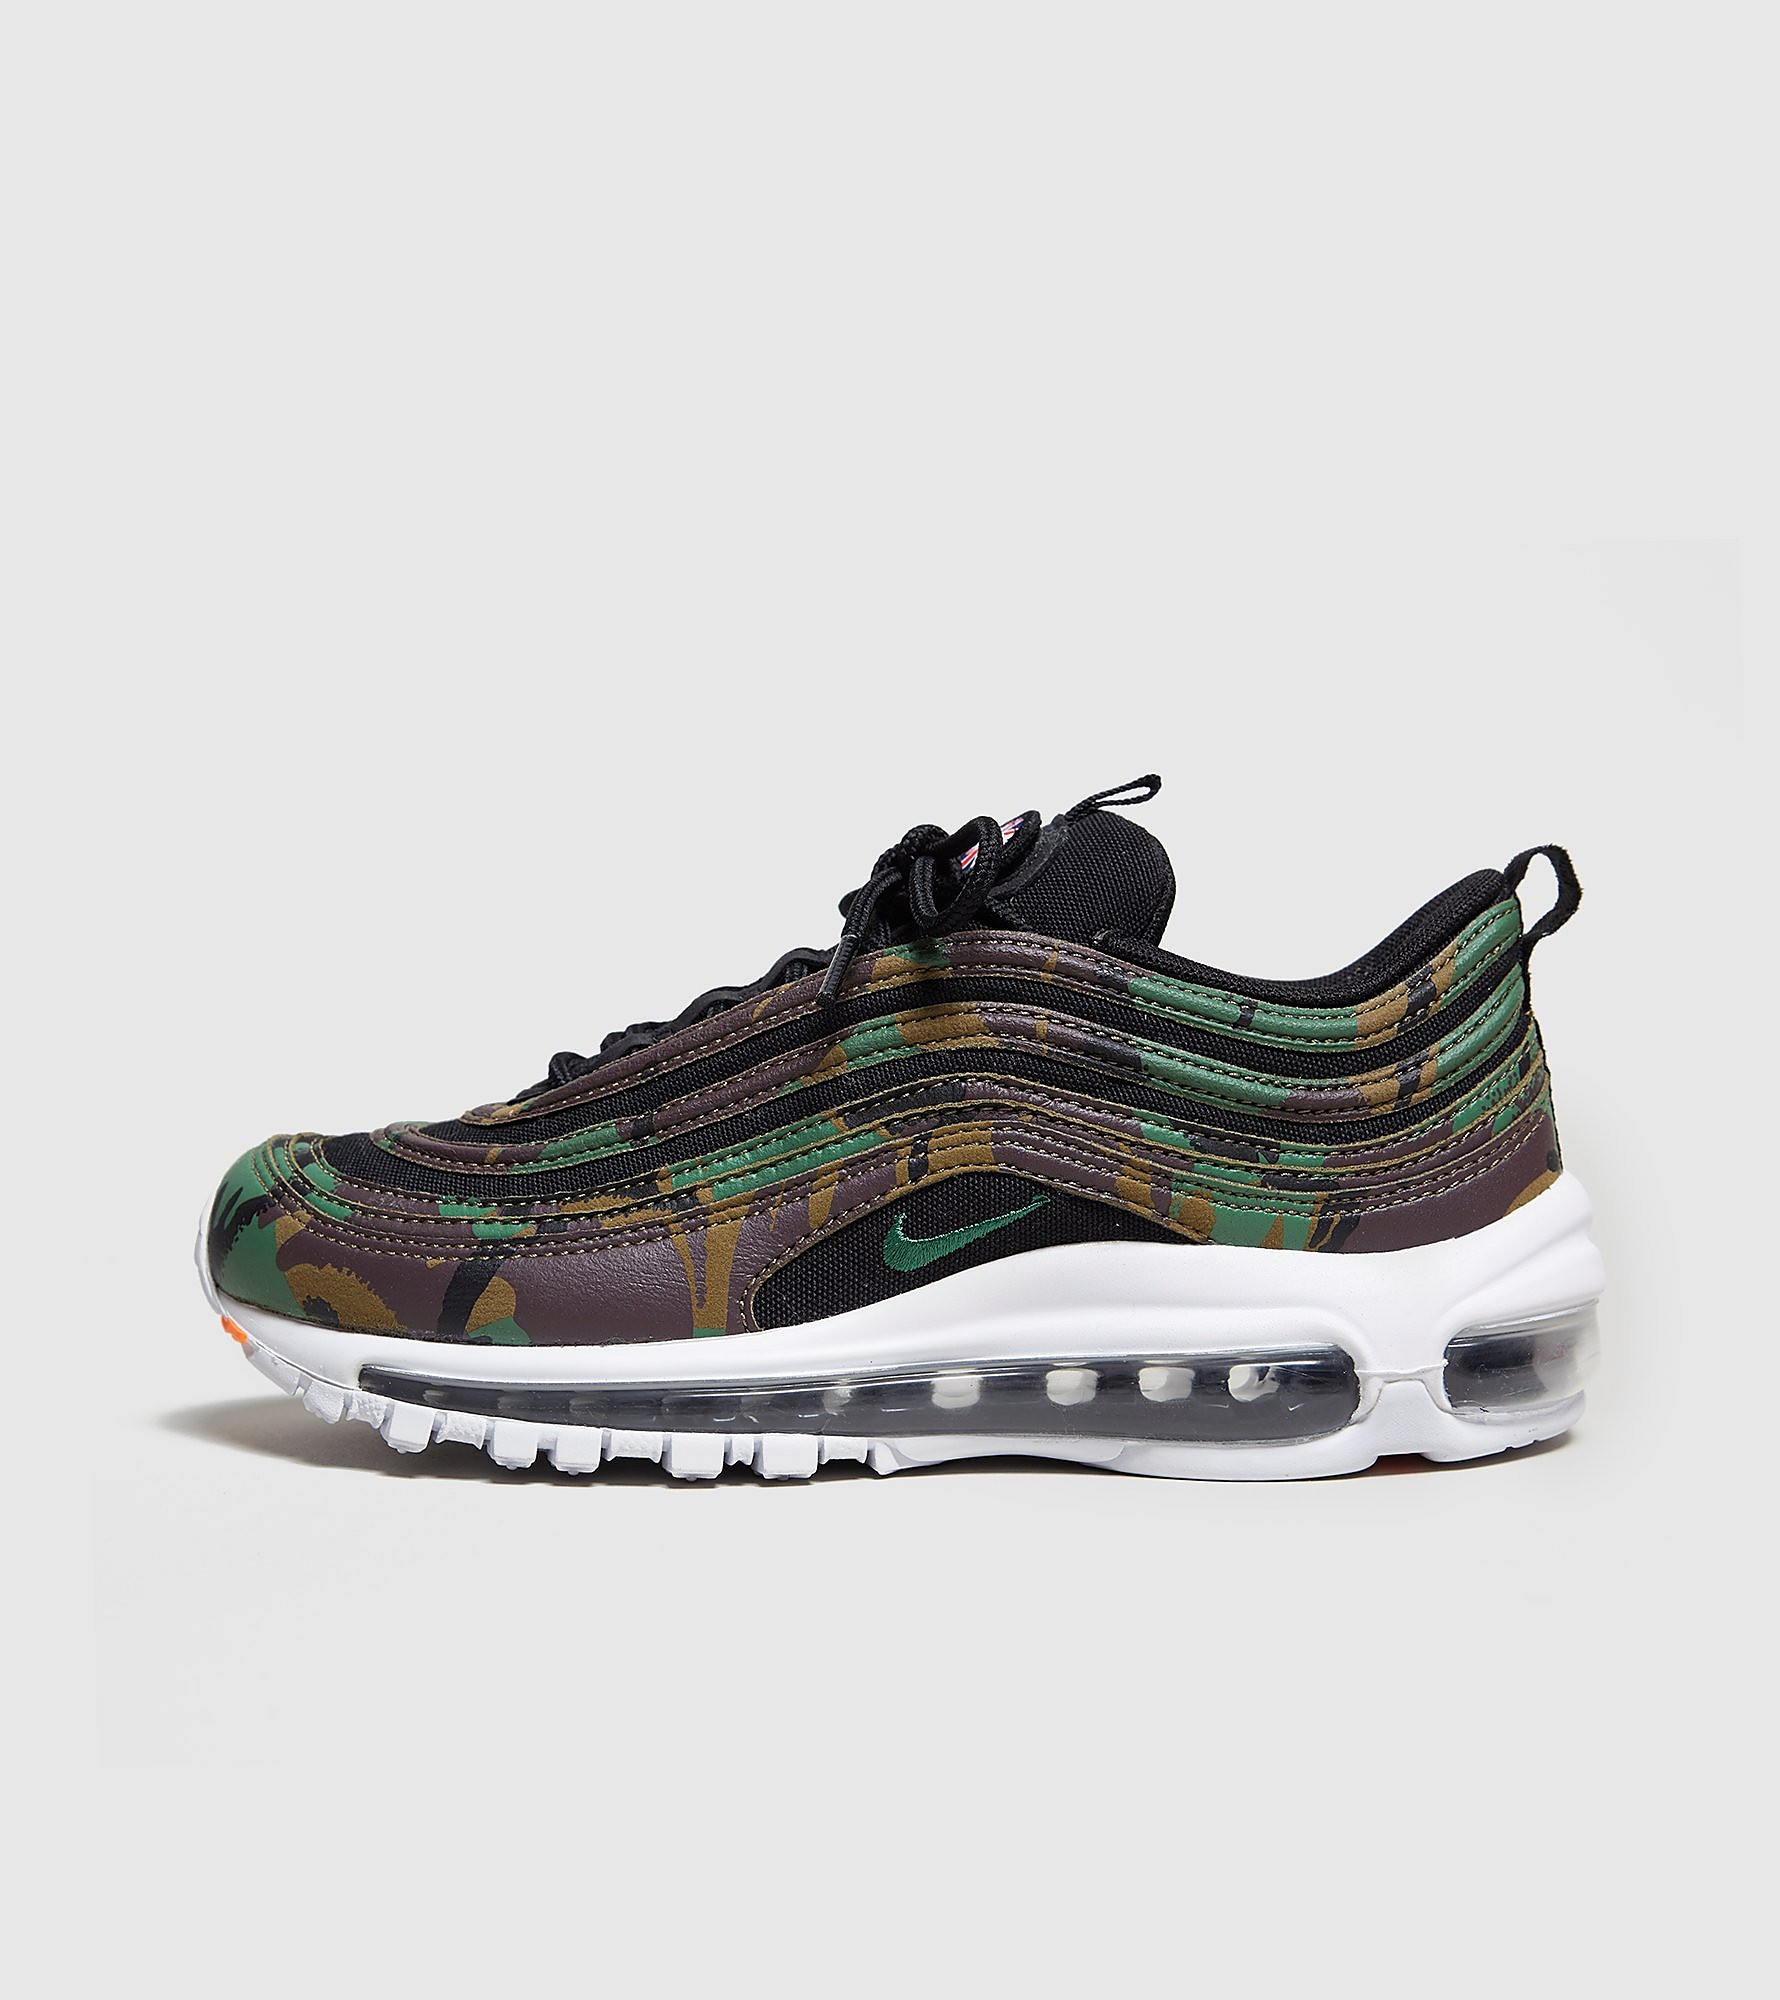 Nike Air Max 97 UK Women's